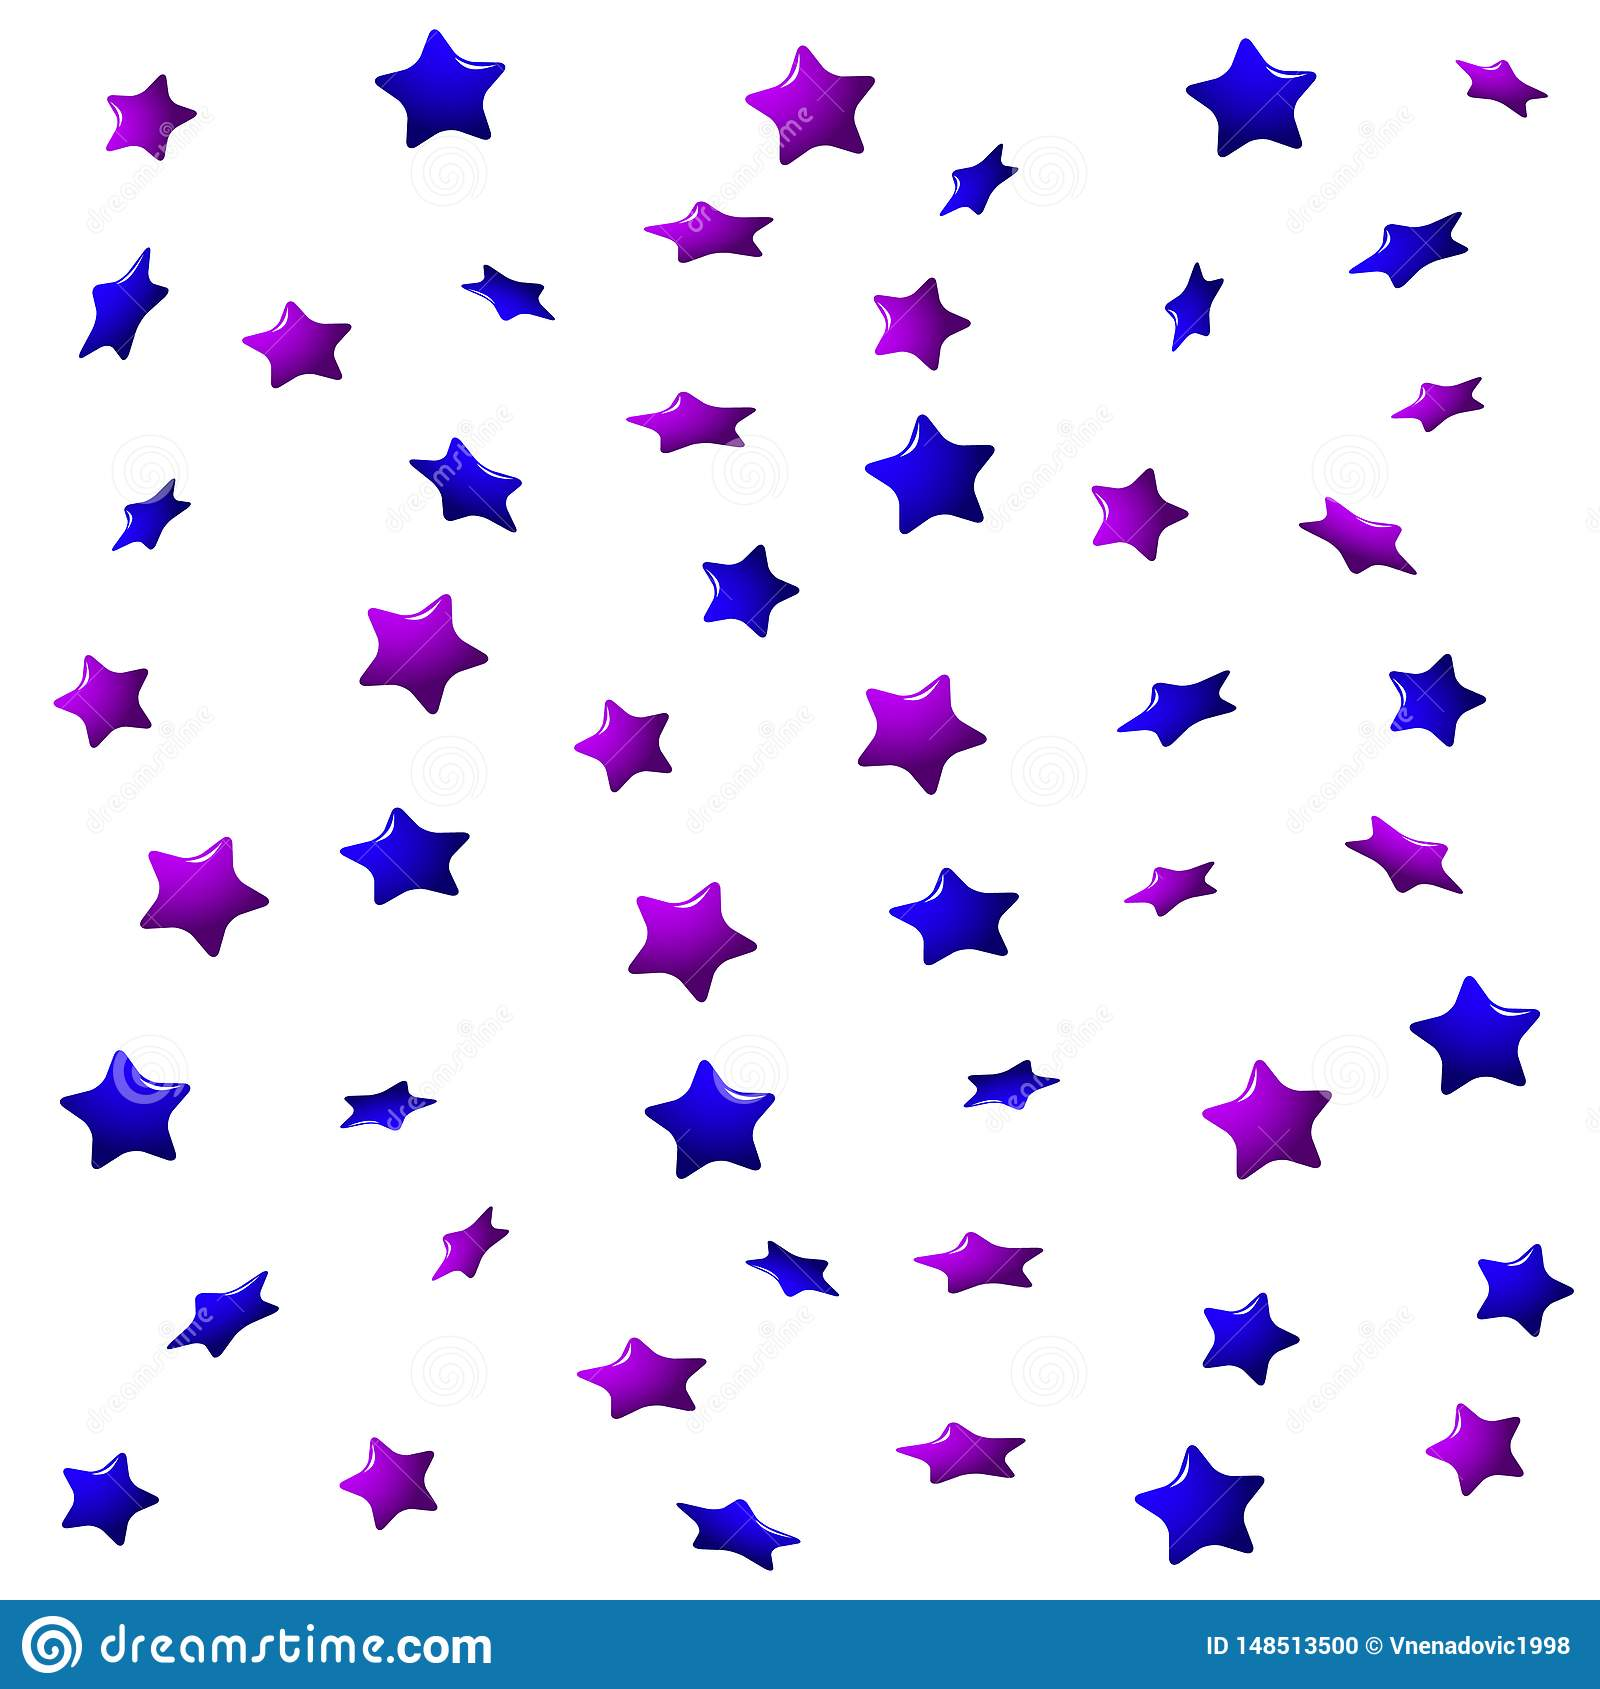 Purple and blue stars on a white background, seamless endless pattern.